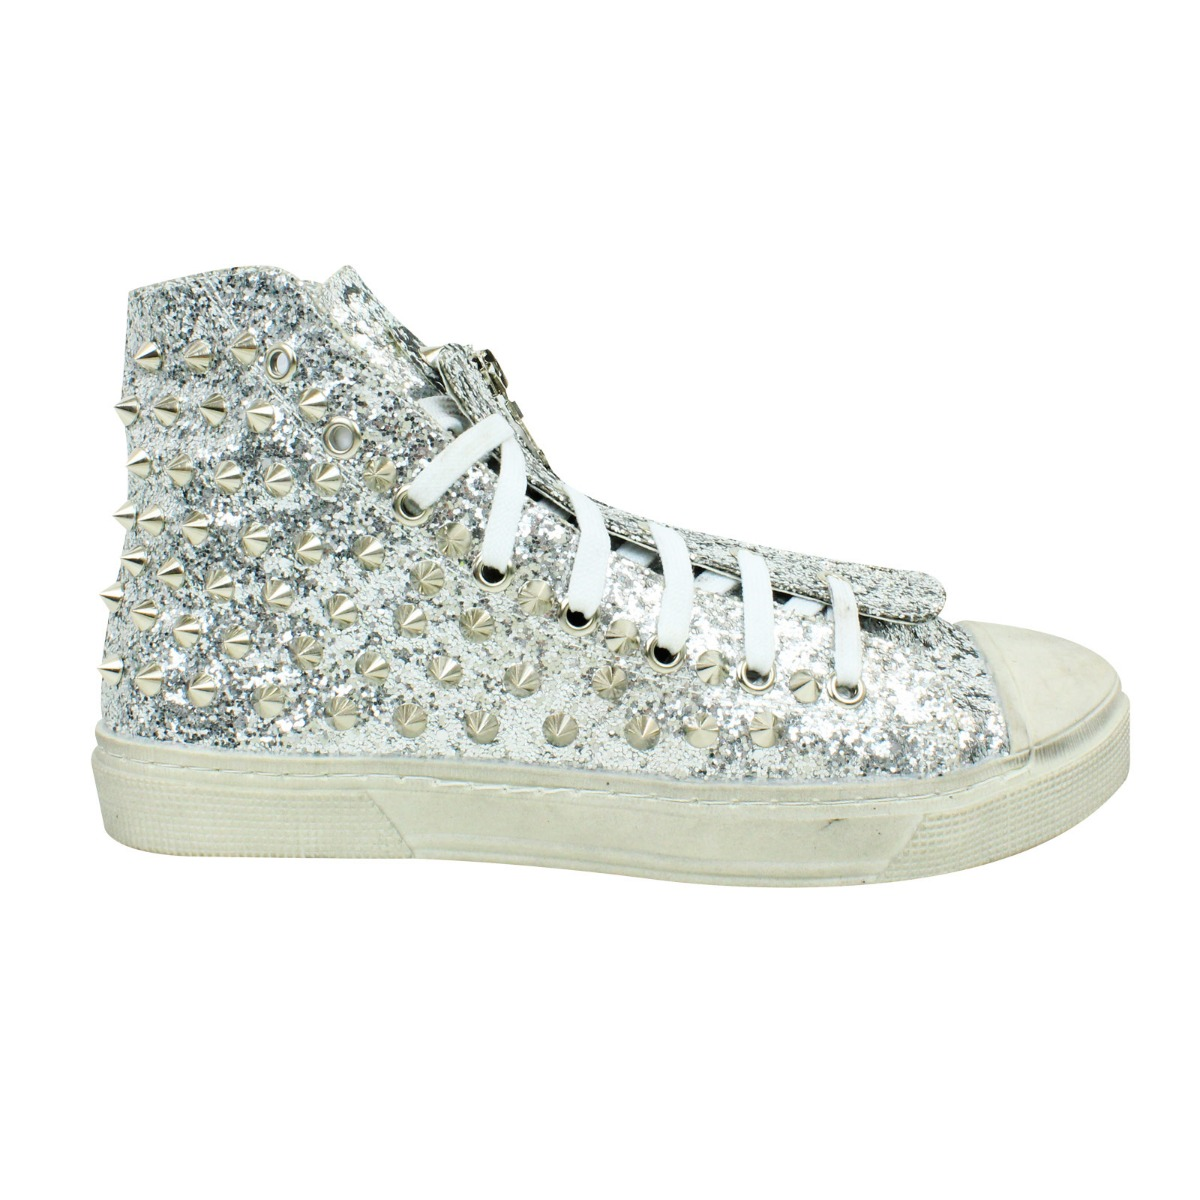 5acb957278aa ... Girls Womens Sparkly Glitter High Top Studded Trainers Lace Up Zip UK  Size 2-7